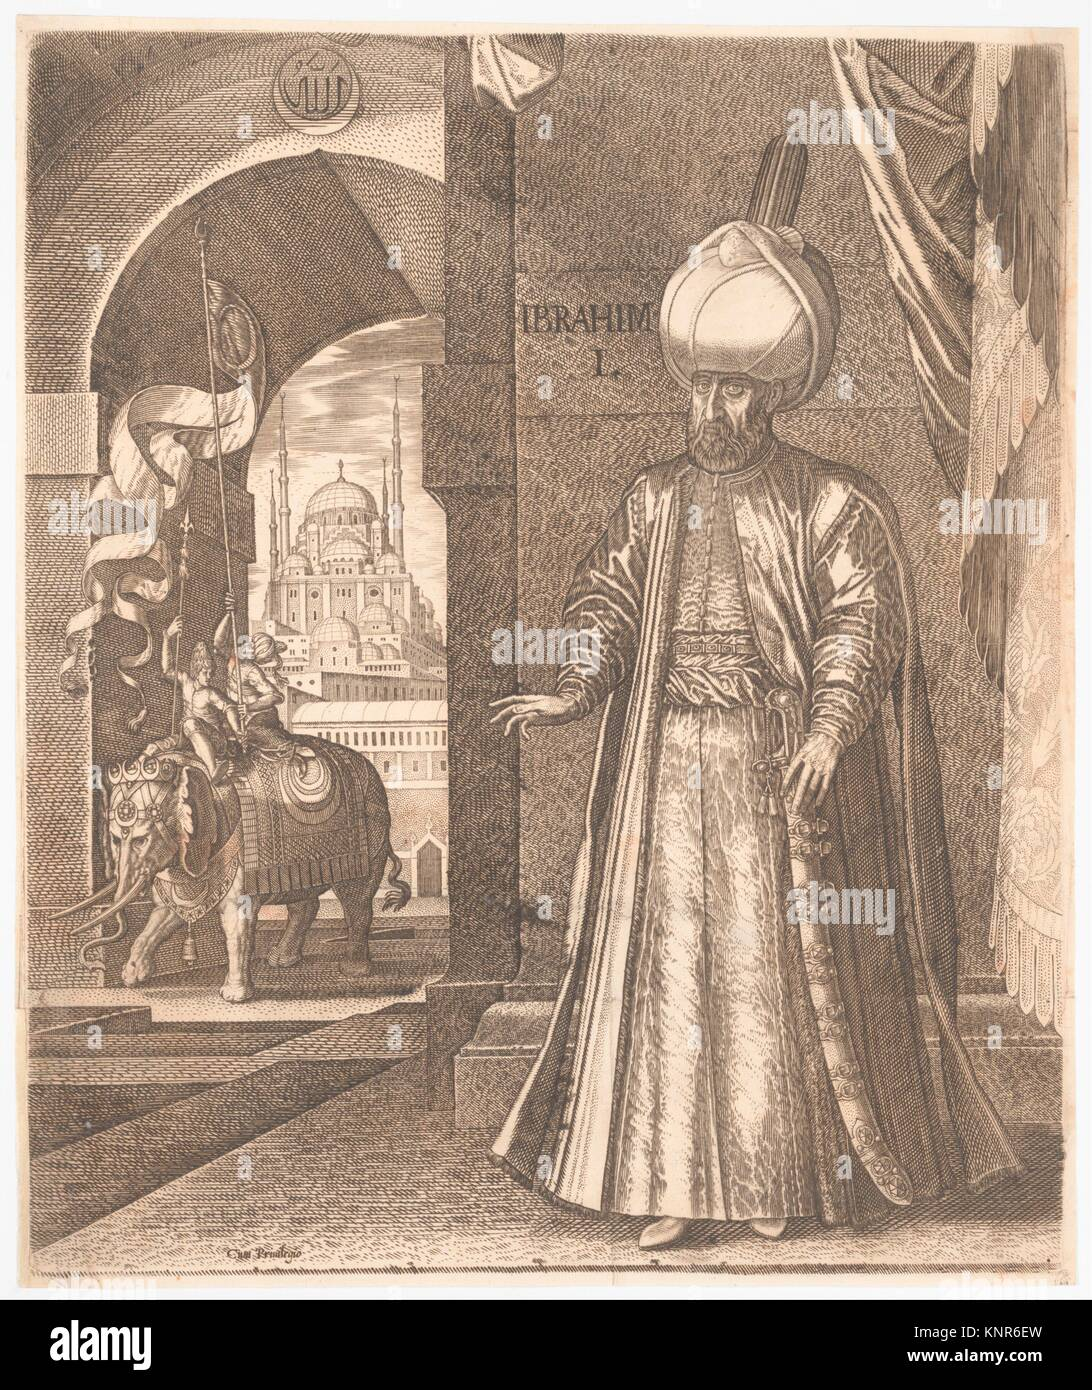 Sultan Süleyman and the Süleymaniye Mosque, Constantinople, 1574 (or earlier) , altered in 1688 to represent - Stock Image